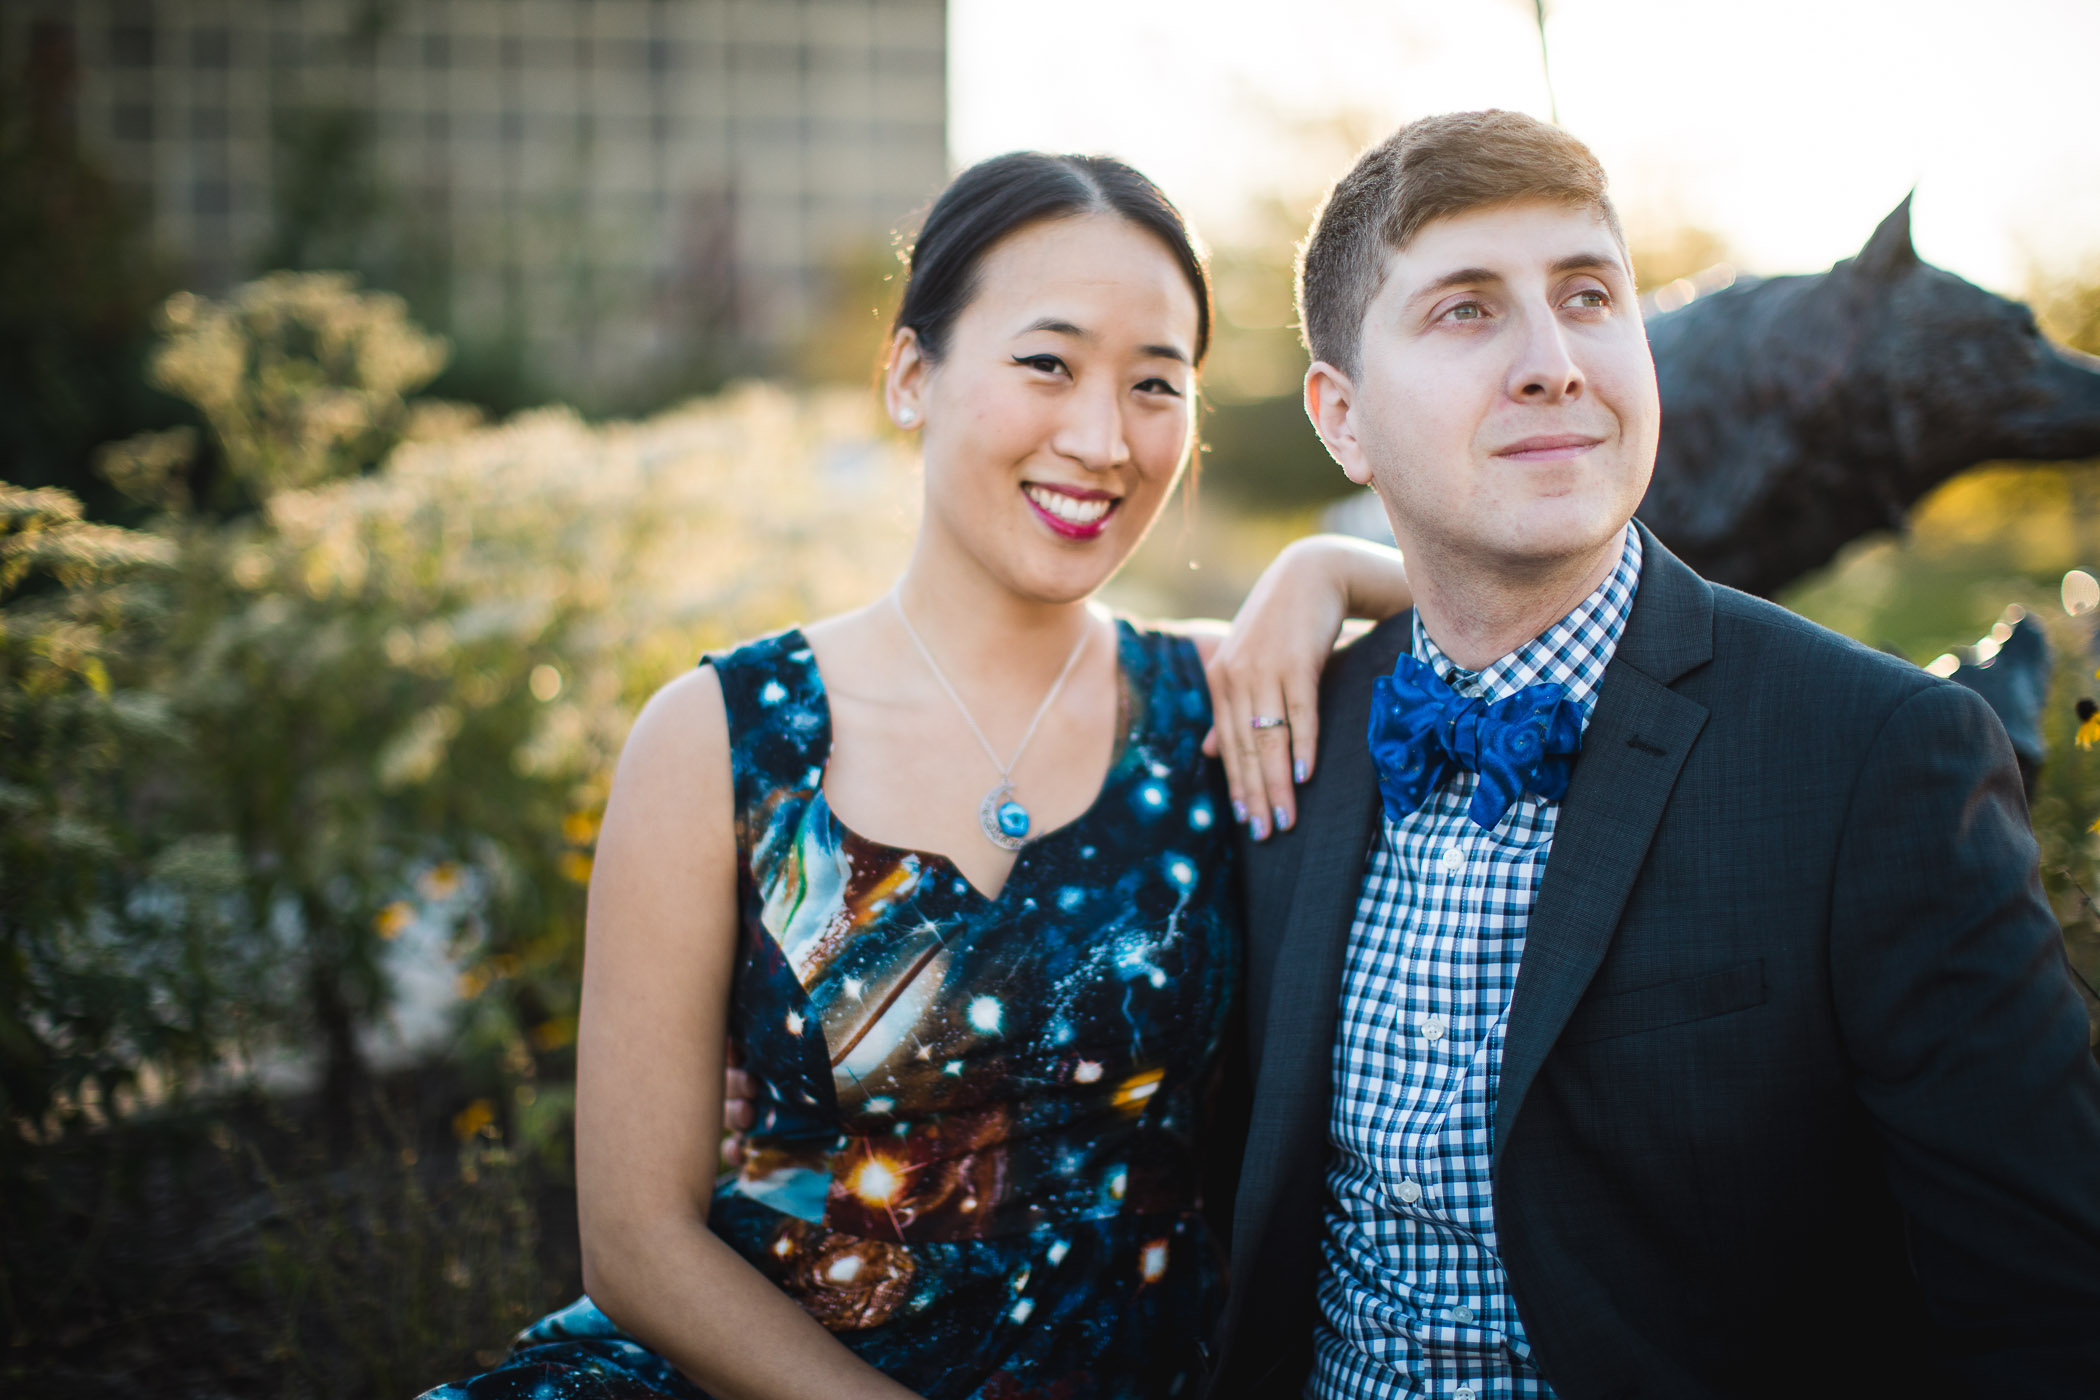 This Couple Had Their Engagement Session on Earth 17